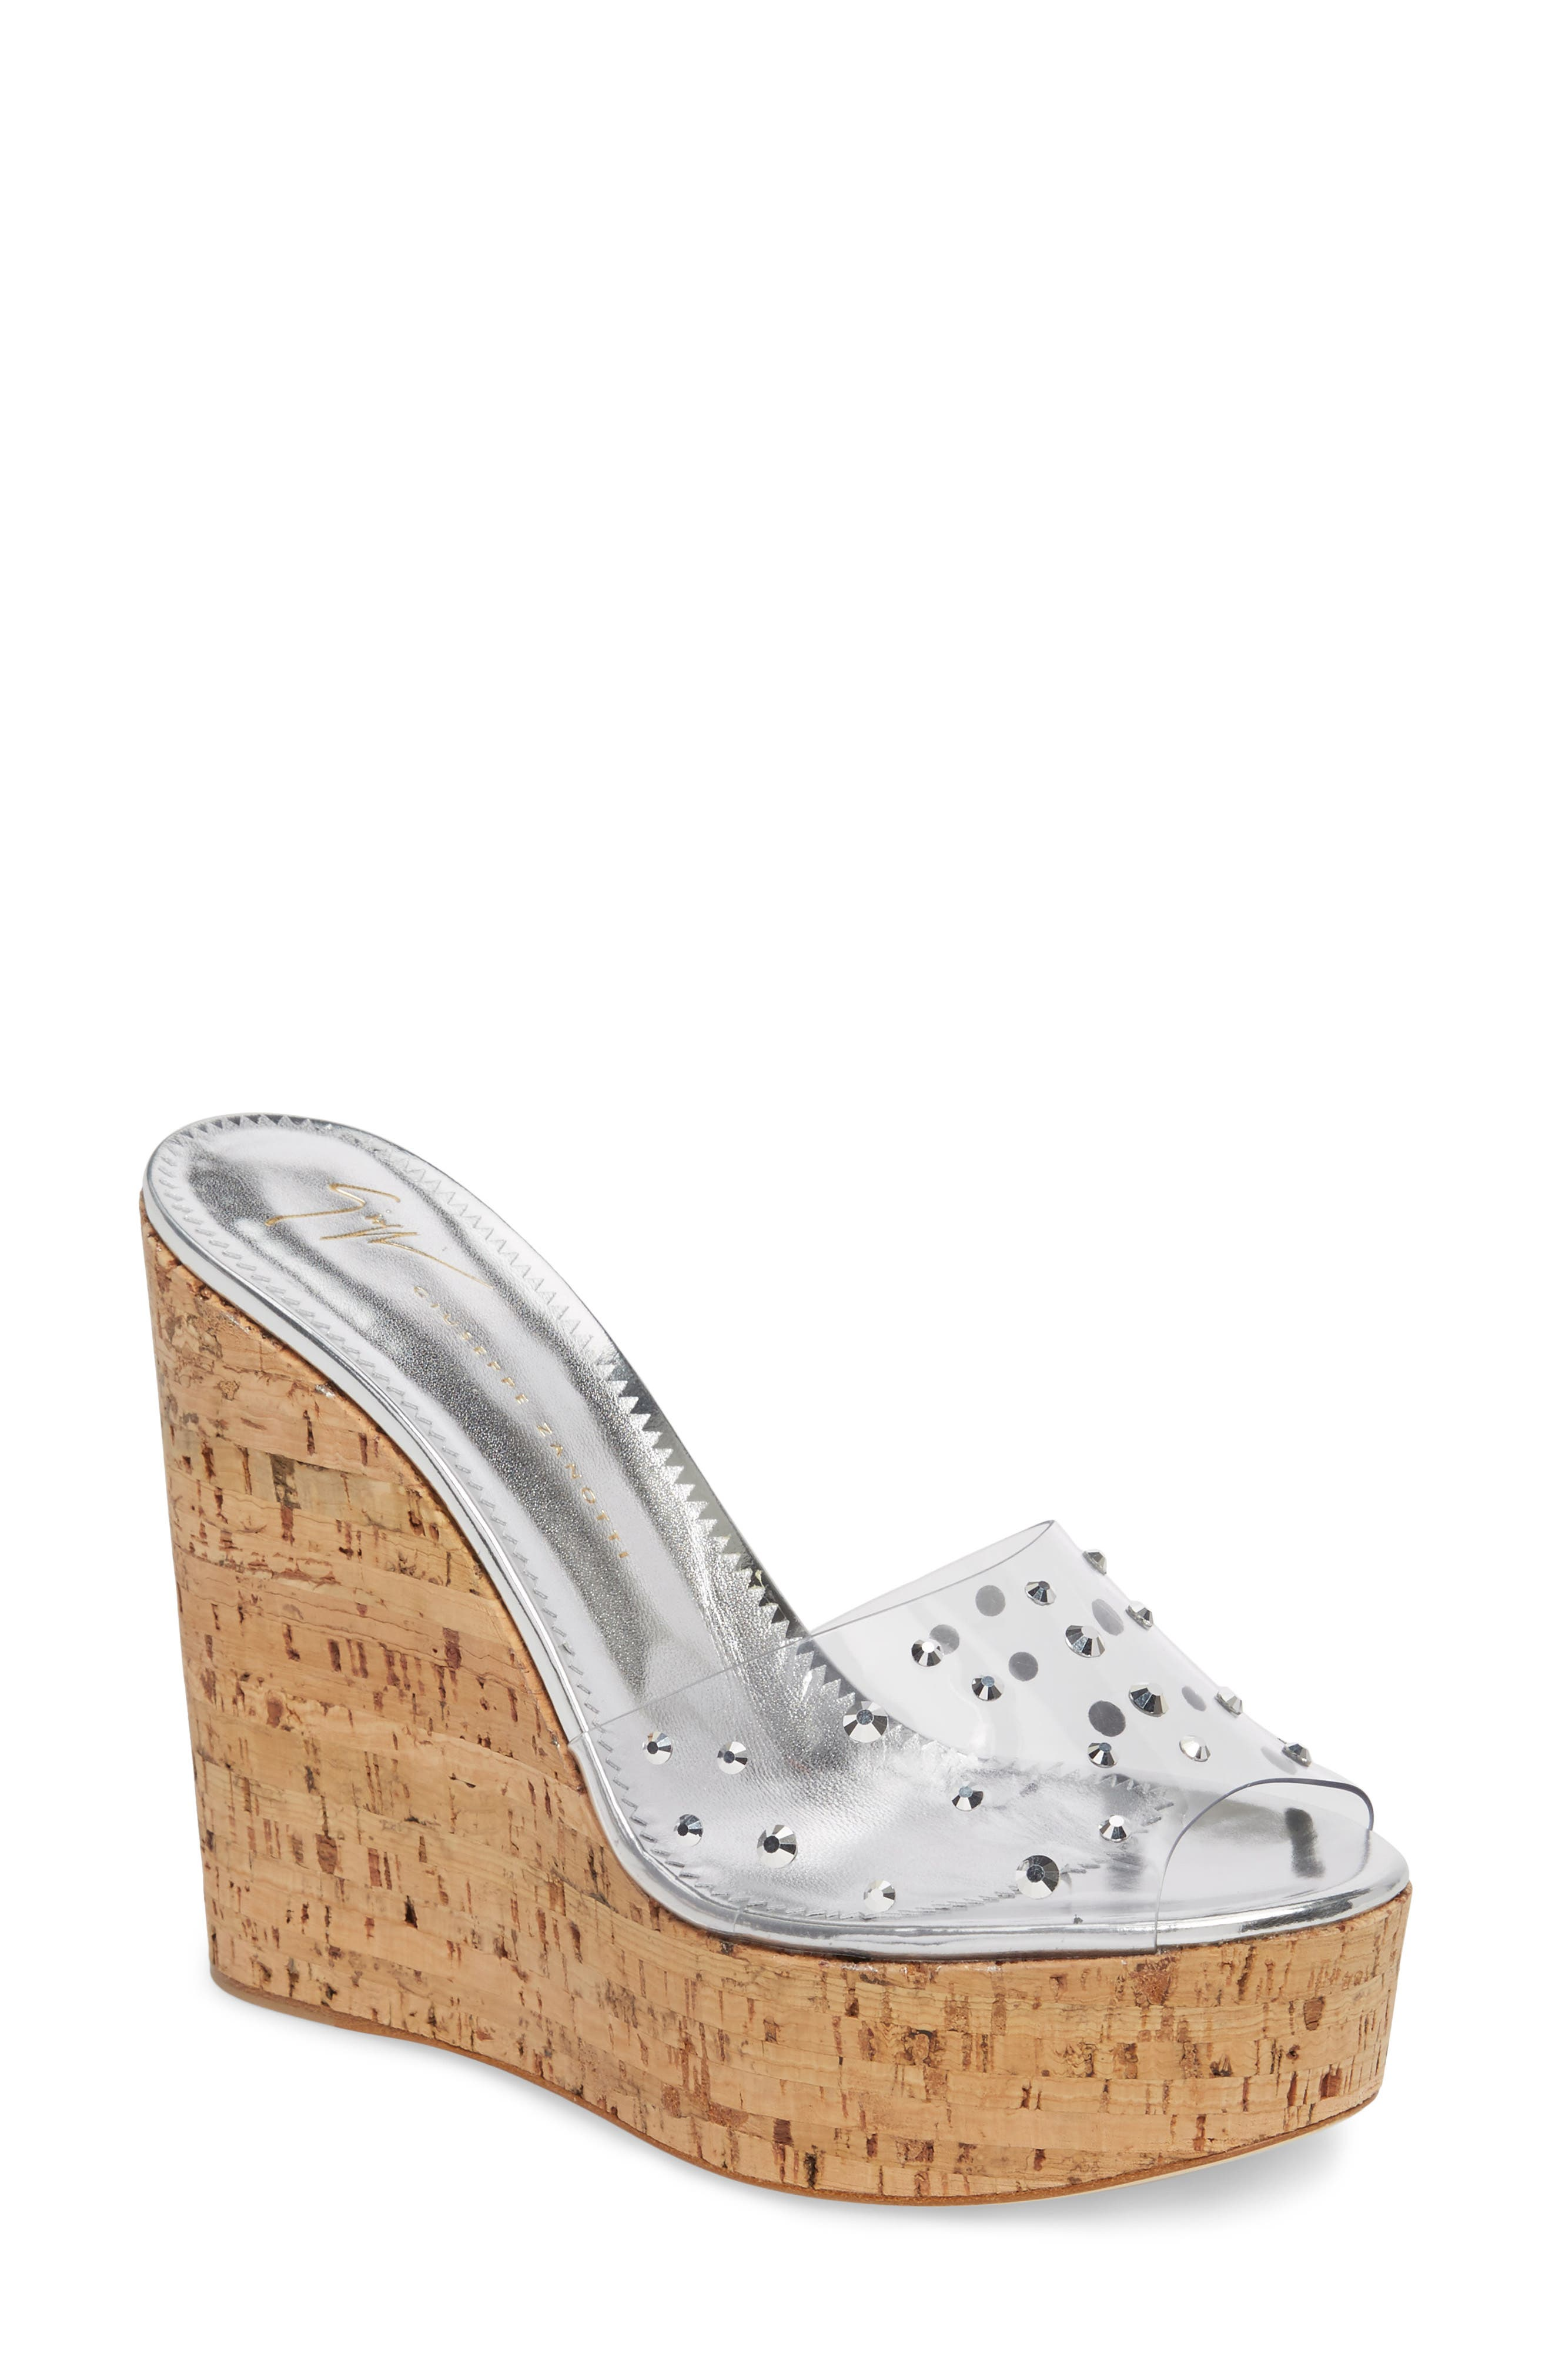 Giuseppe Zanotti Clear Studded Platform Wedge Sandal (Women)